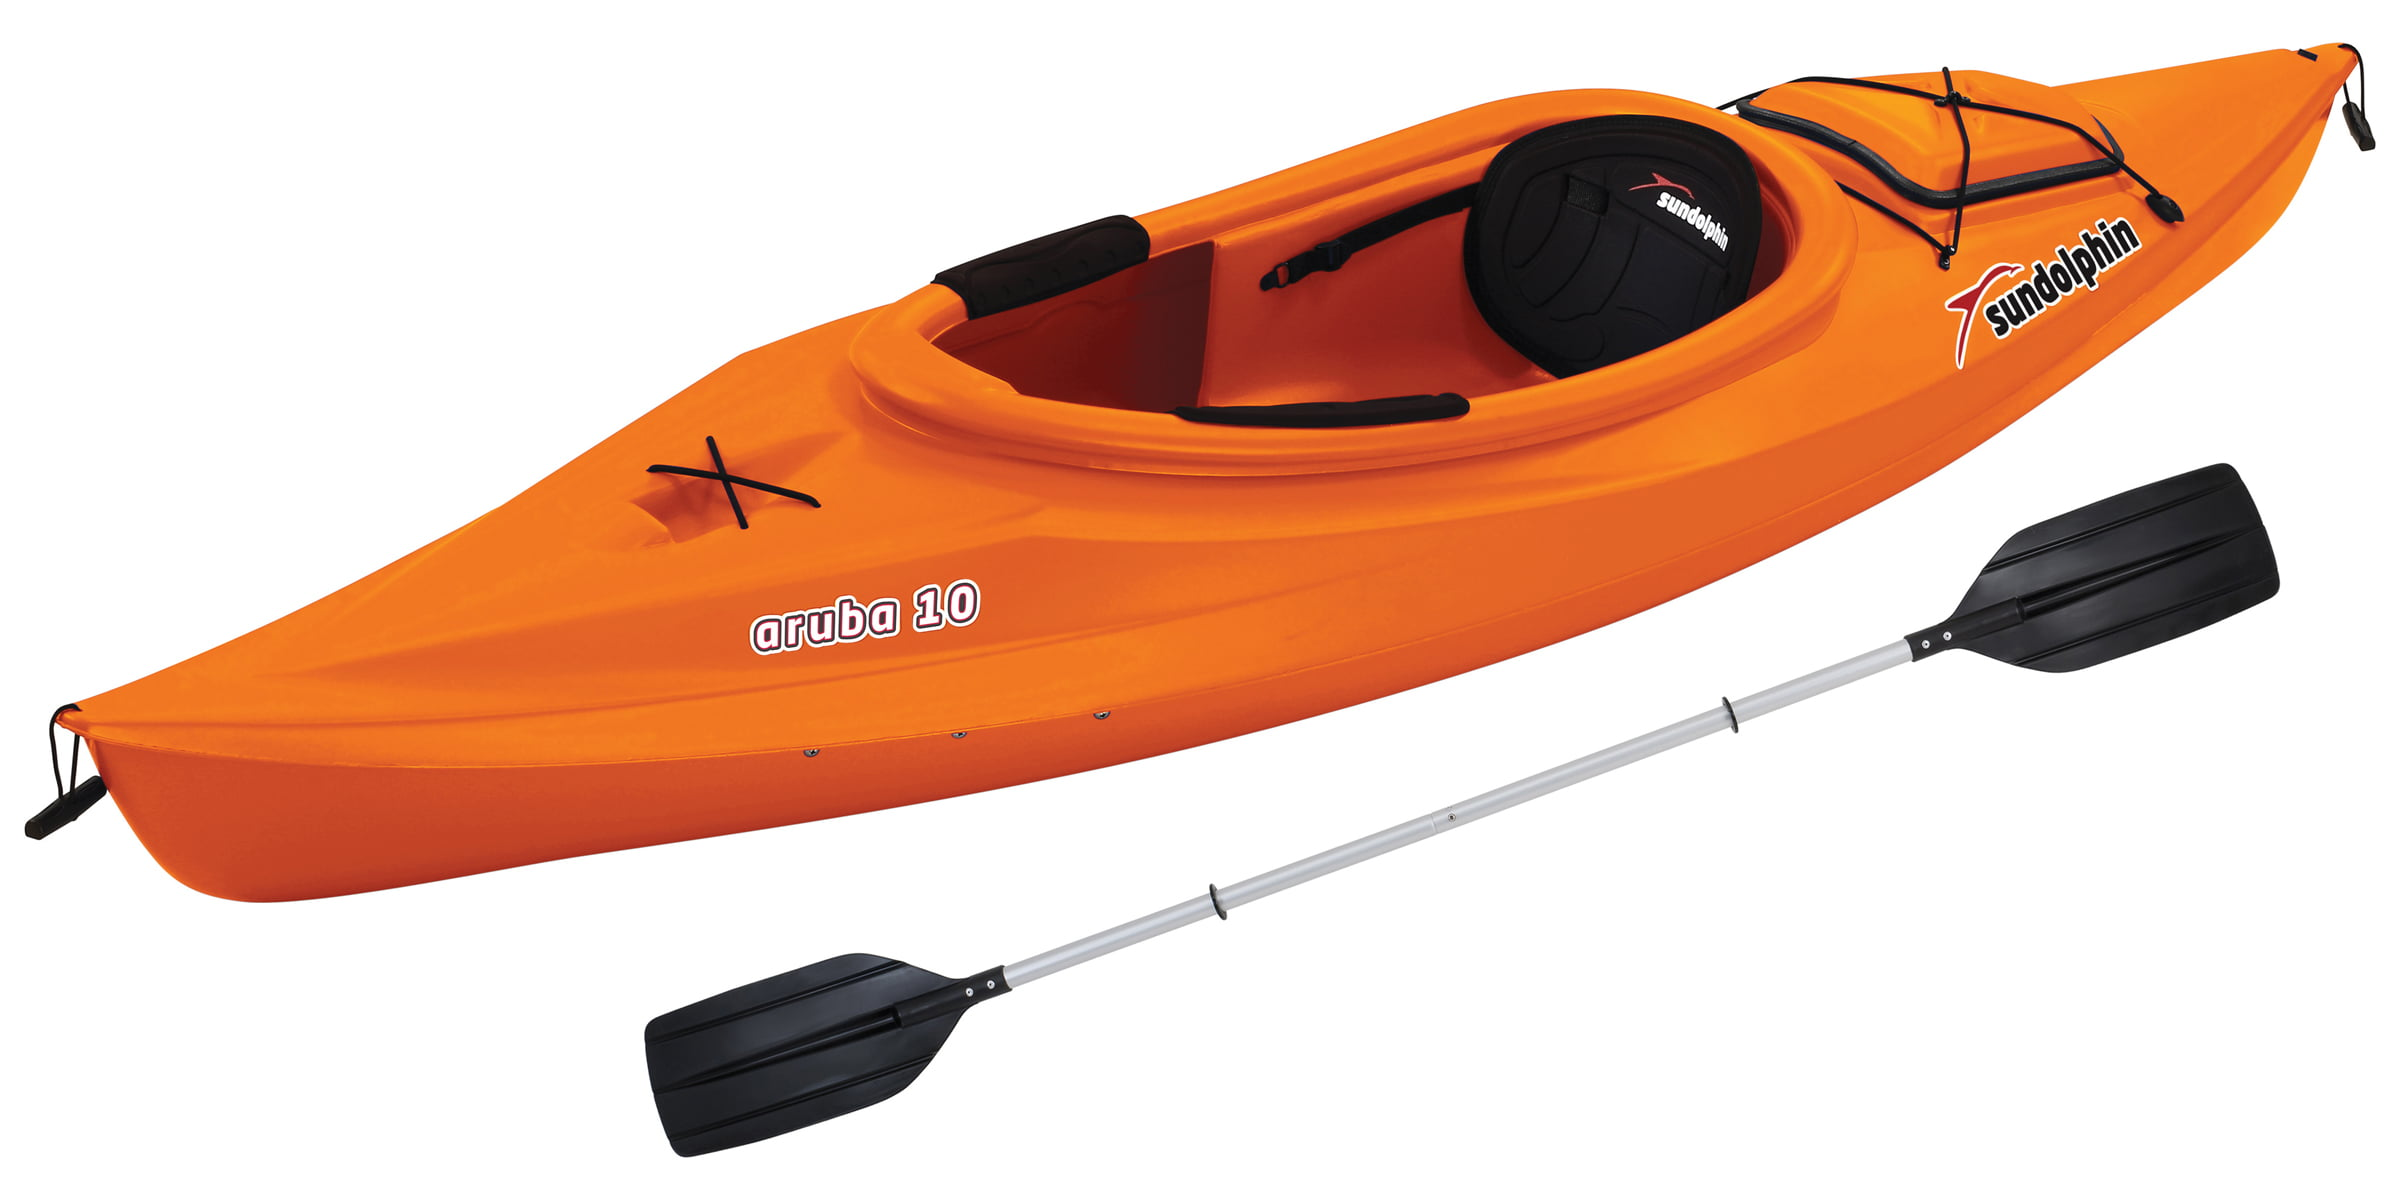 Sun Dolphin Aruba 10' Sit In Kayak Lime, Paddle Included by KL Outdoor